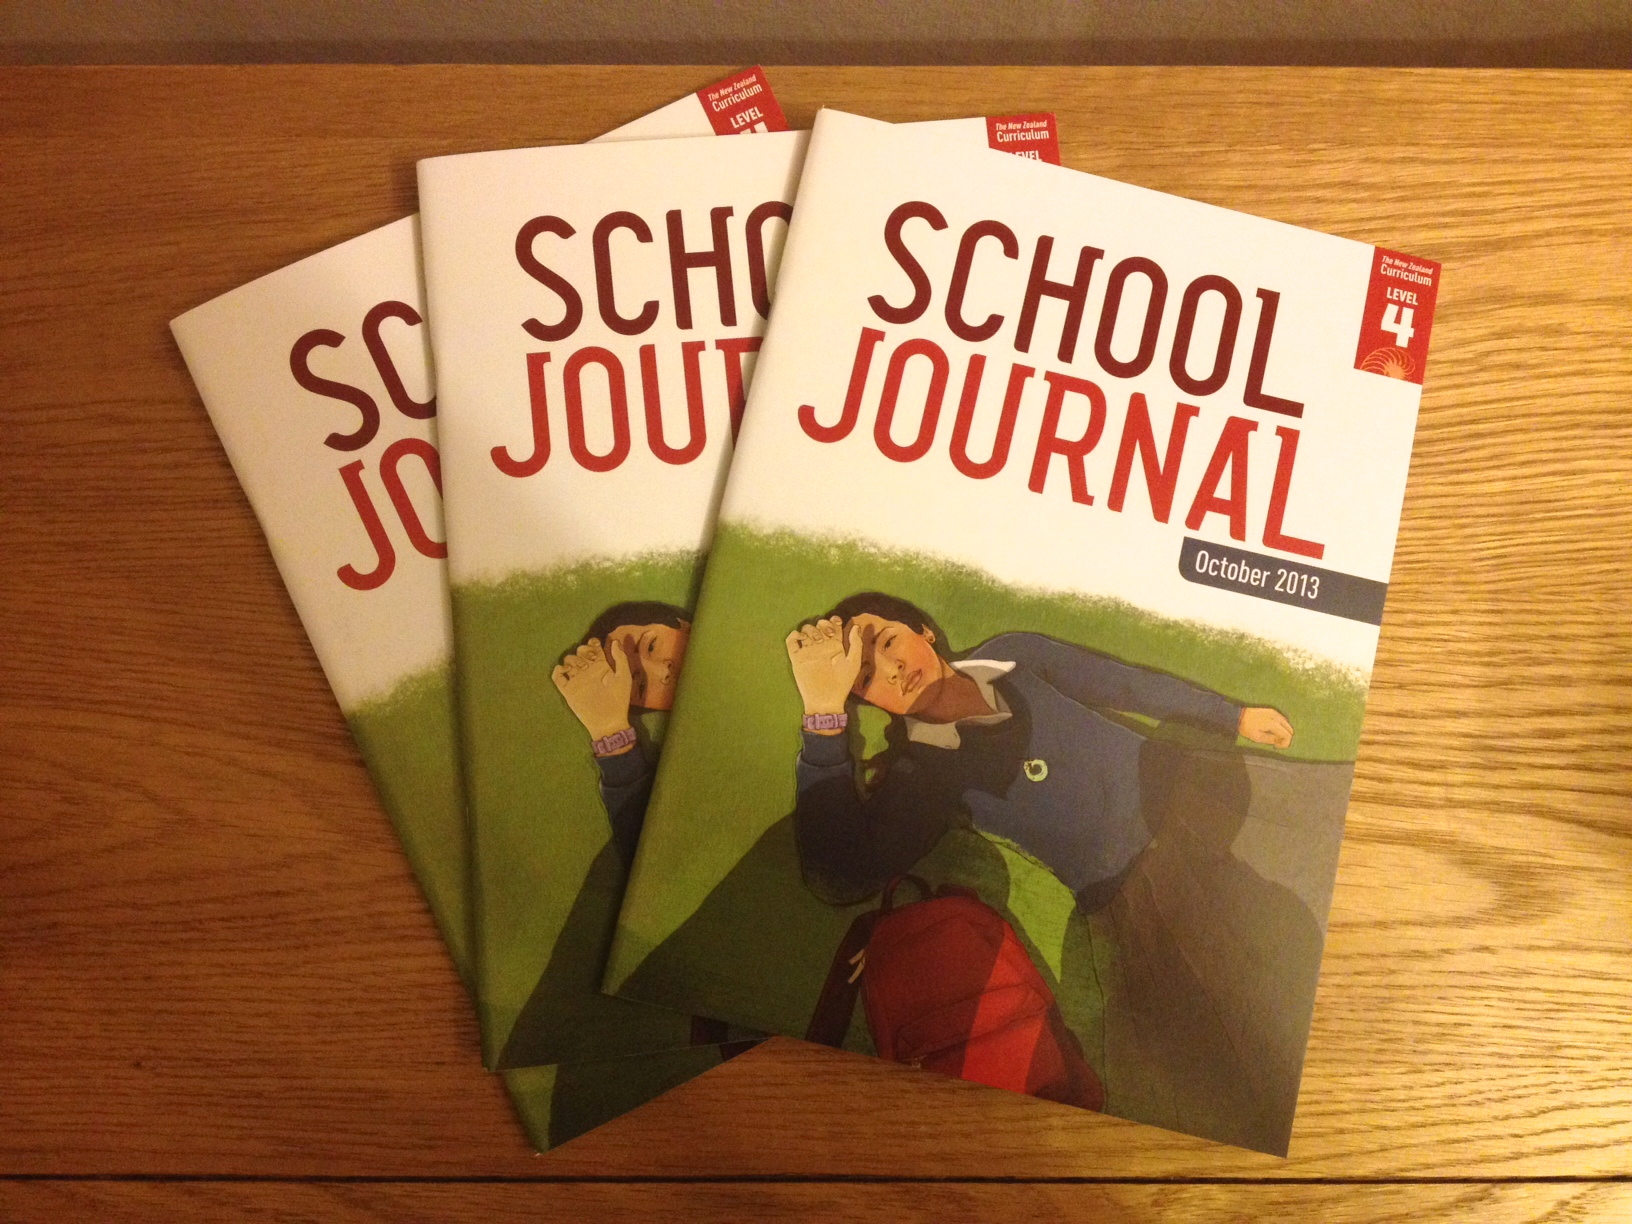 One of our last School Journals arrived from the printers. I can't wait for the next one to say it was designed by Bolster Design